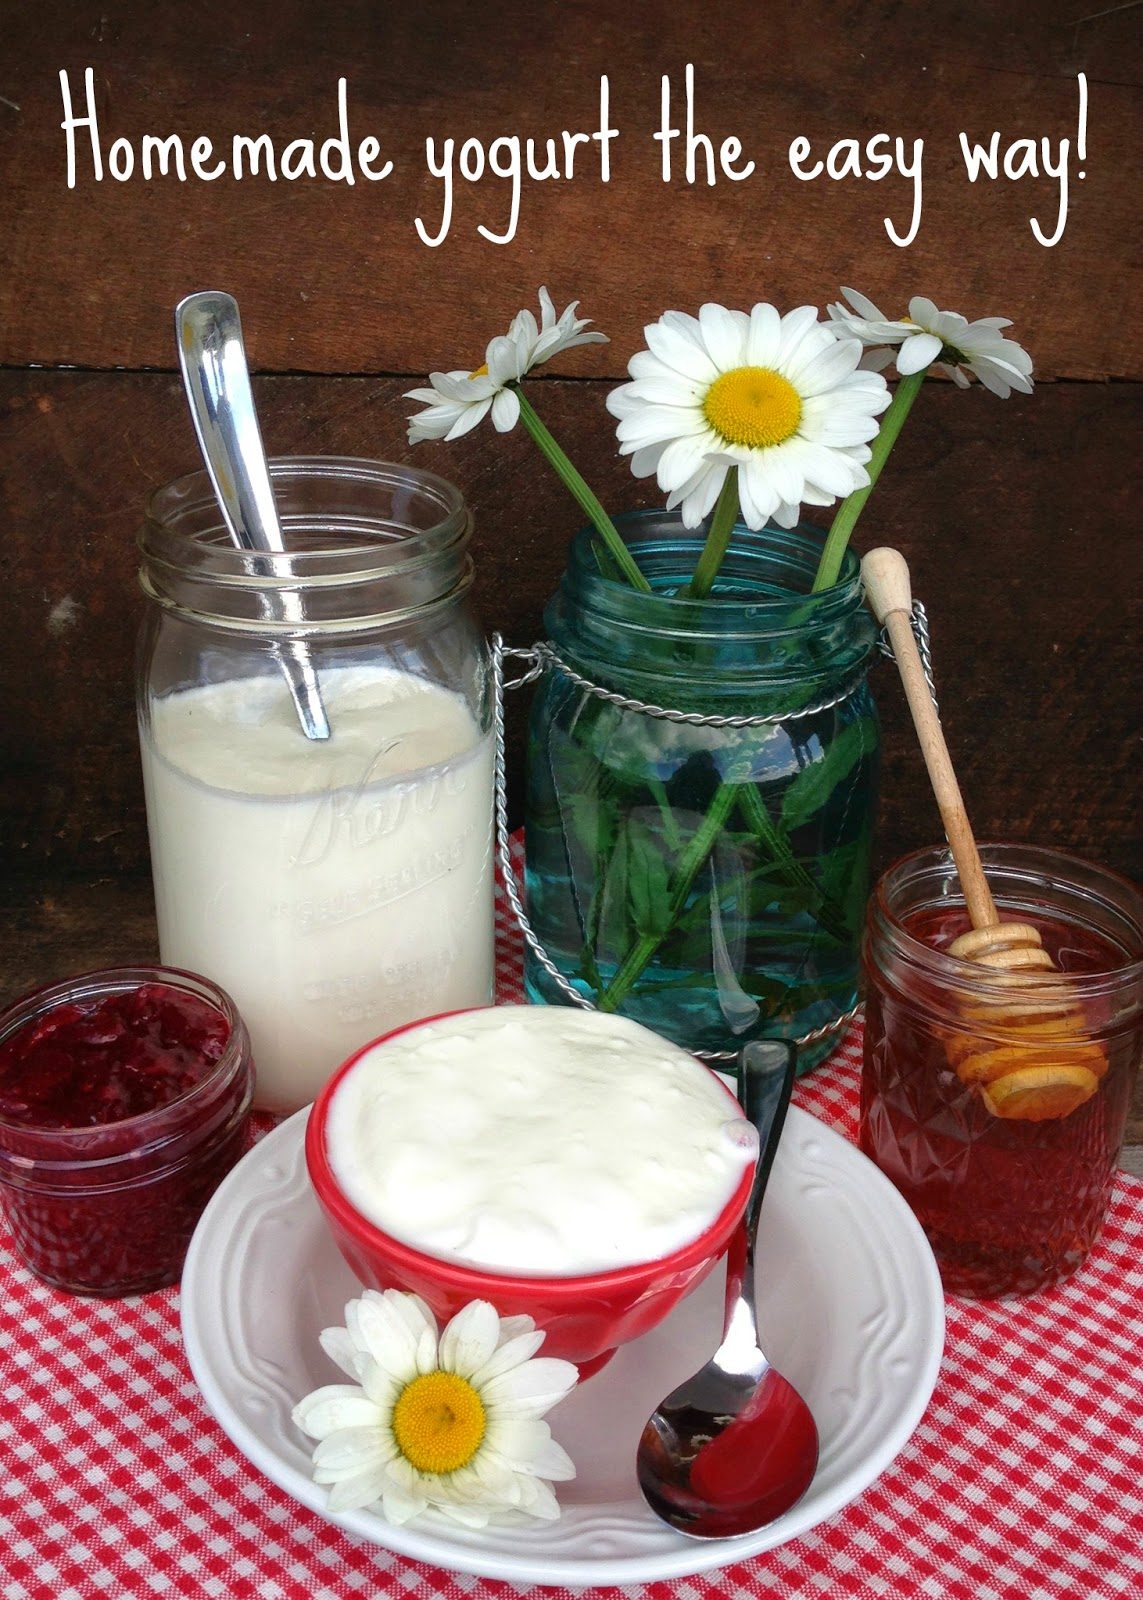 easy homemade yogurt: how to make delicious yogurt in your oven!